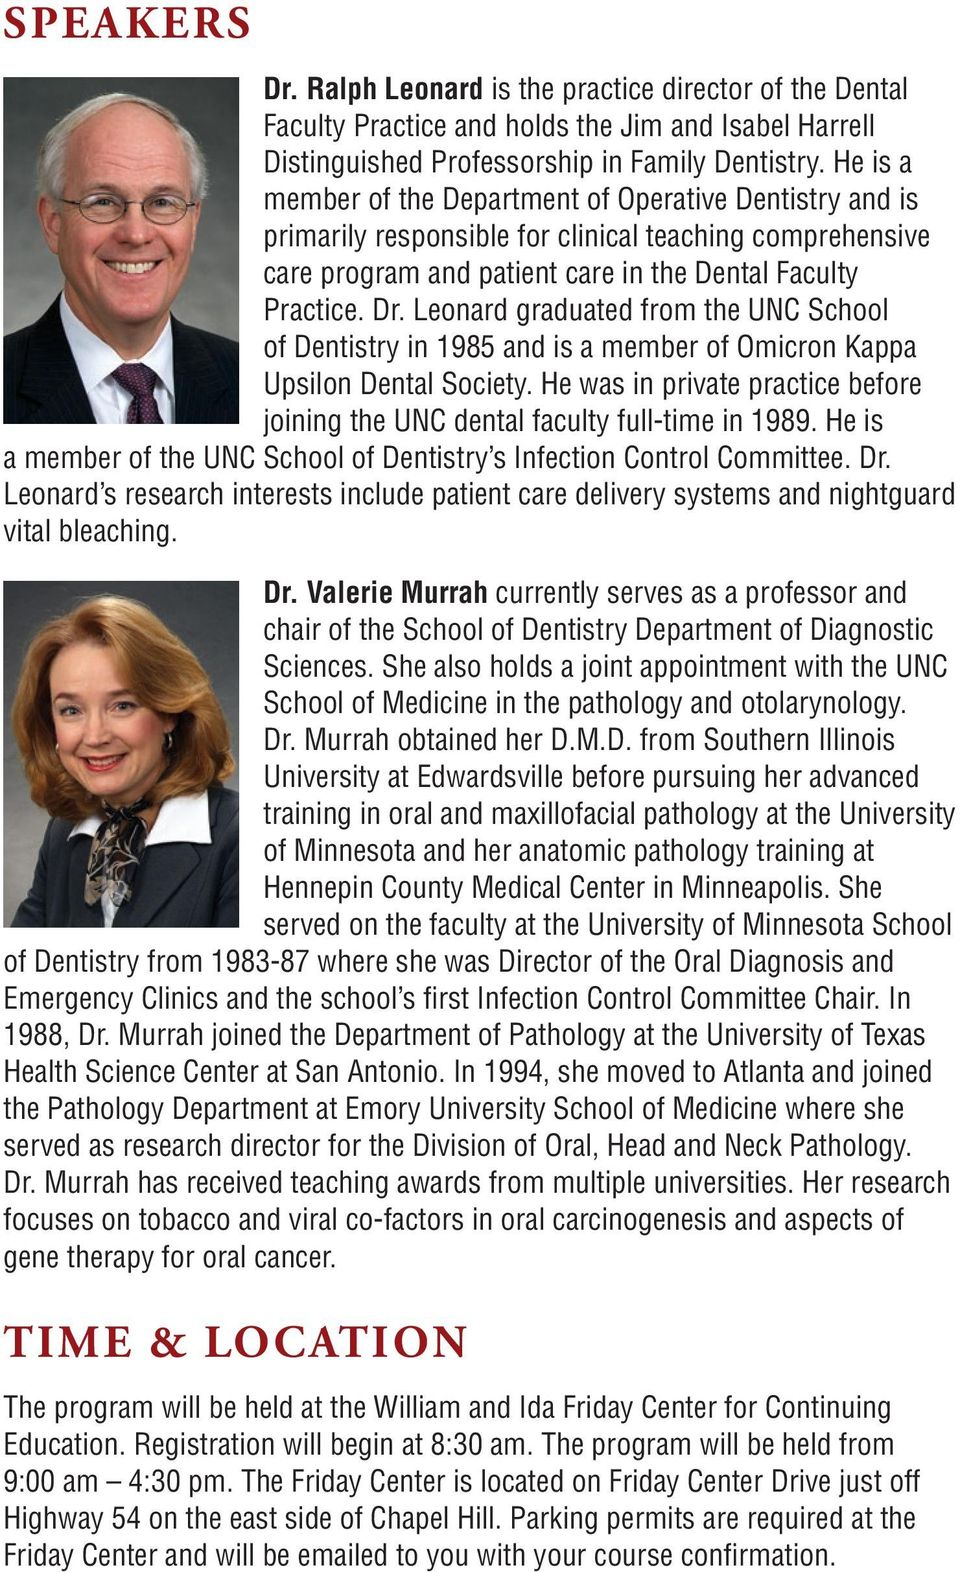 Leonard graduated from the UNC School of Dentistry in 1985 and is a member of Omicron Kappa Upsilon Dental Society. He was in private practice before joining the UNC dental faculty full-time in 1989.